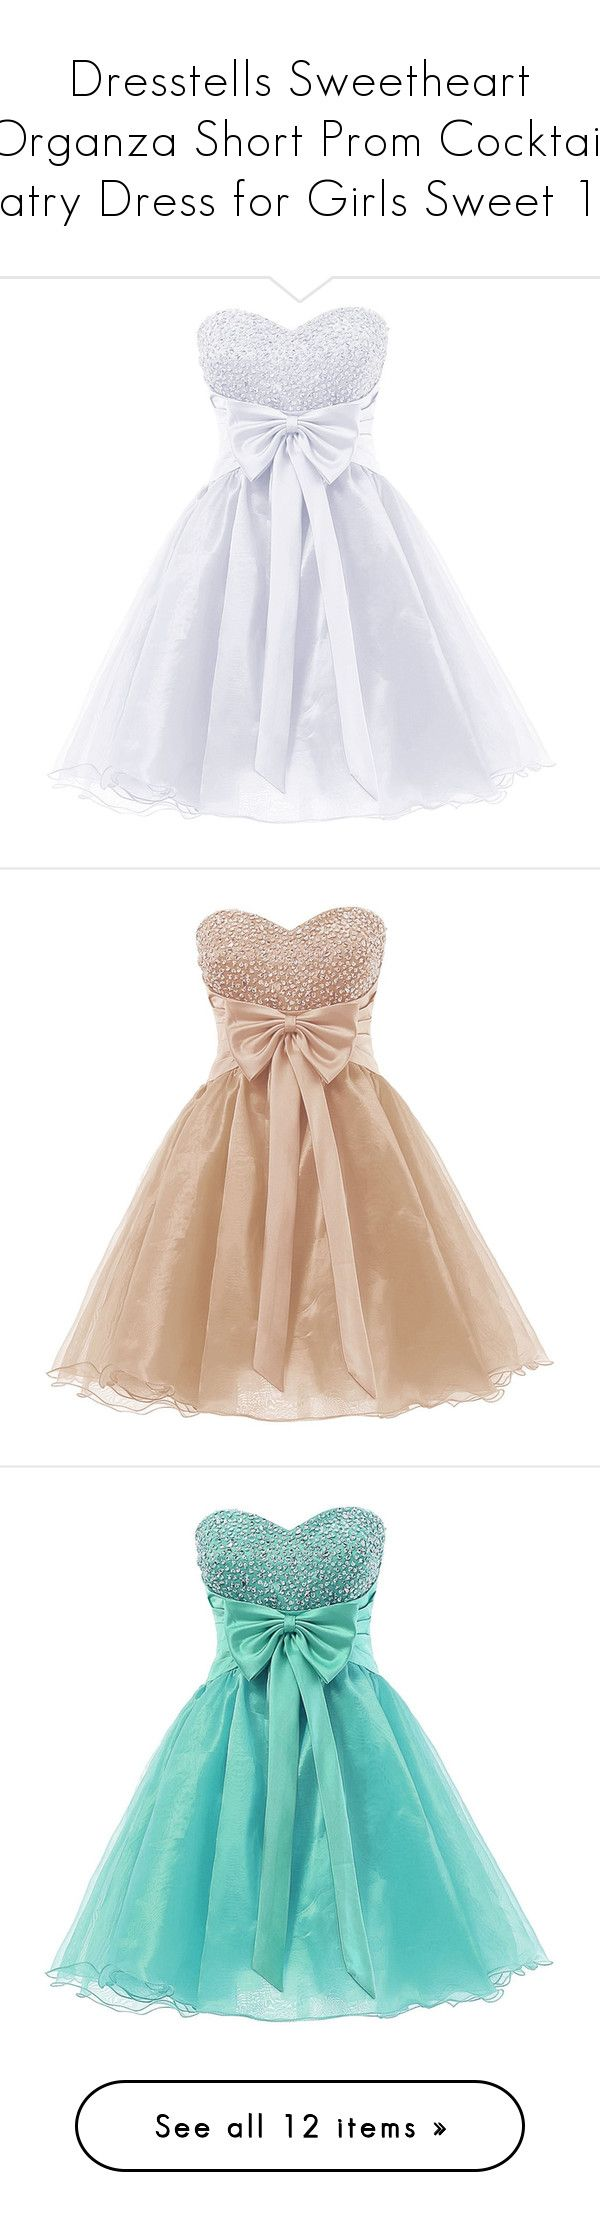 """""""Dresstells Sweetheart Organza Short Prom Cocktail Patry Dress for Girls Sweet 16"""" by cami-berrene ❤ liked on Polyvore featuring dresses, short dresses, mini cocktail dress, short homecoming dresses, sweetheart neckline cocktail dress, holiday cocktail dresses, holiday dresses, cocktail dresses, homecoming dresses and prom dresses"""